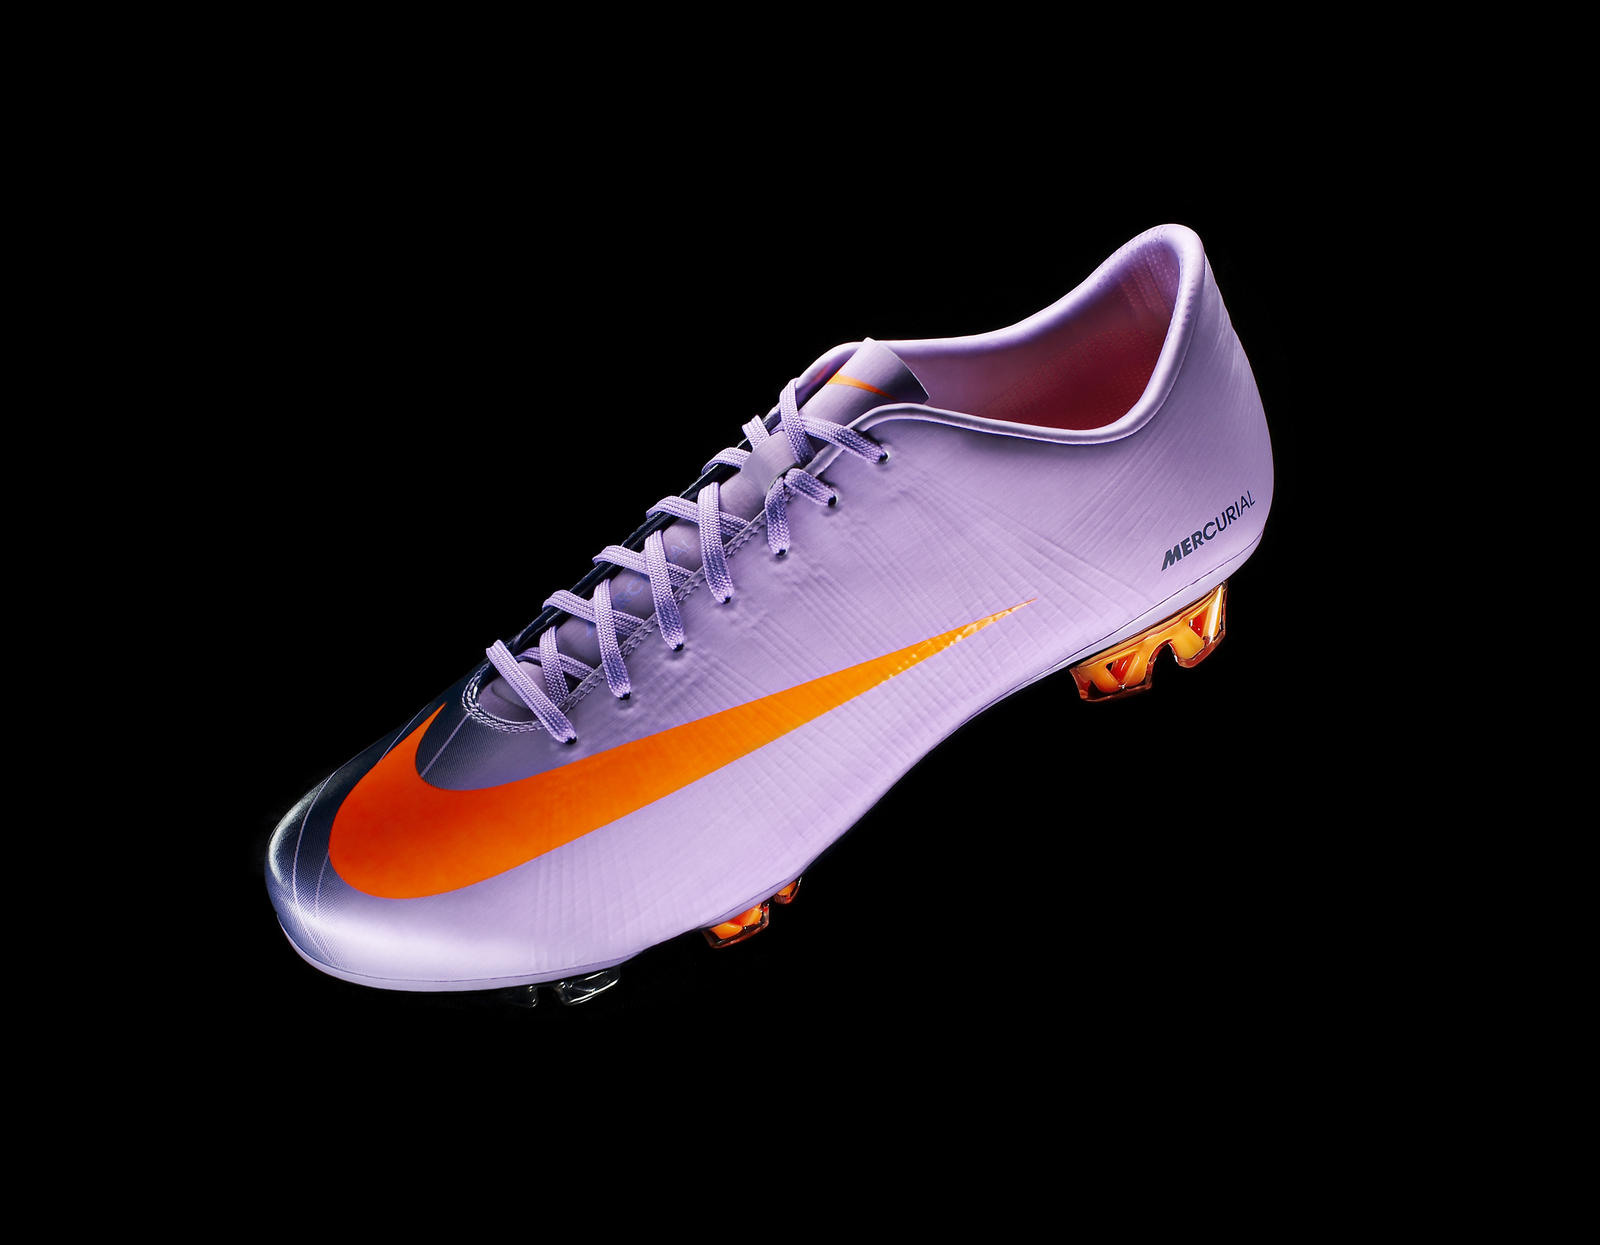 Mercurial Vapor SuperFly II Unveiled - Nike News